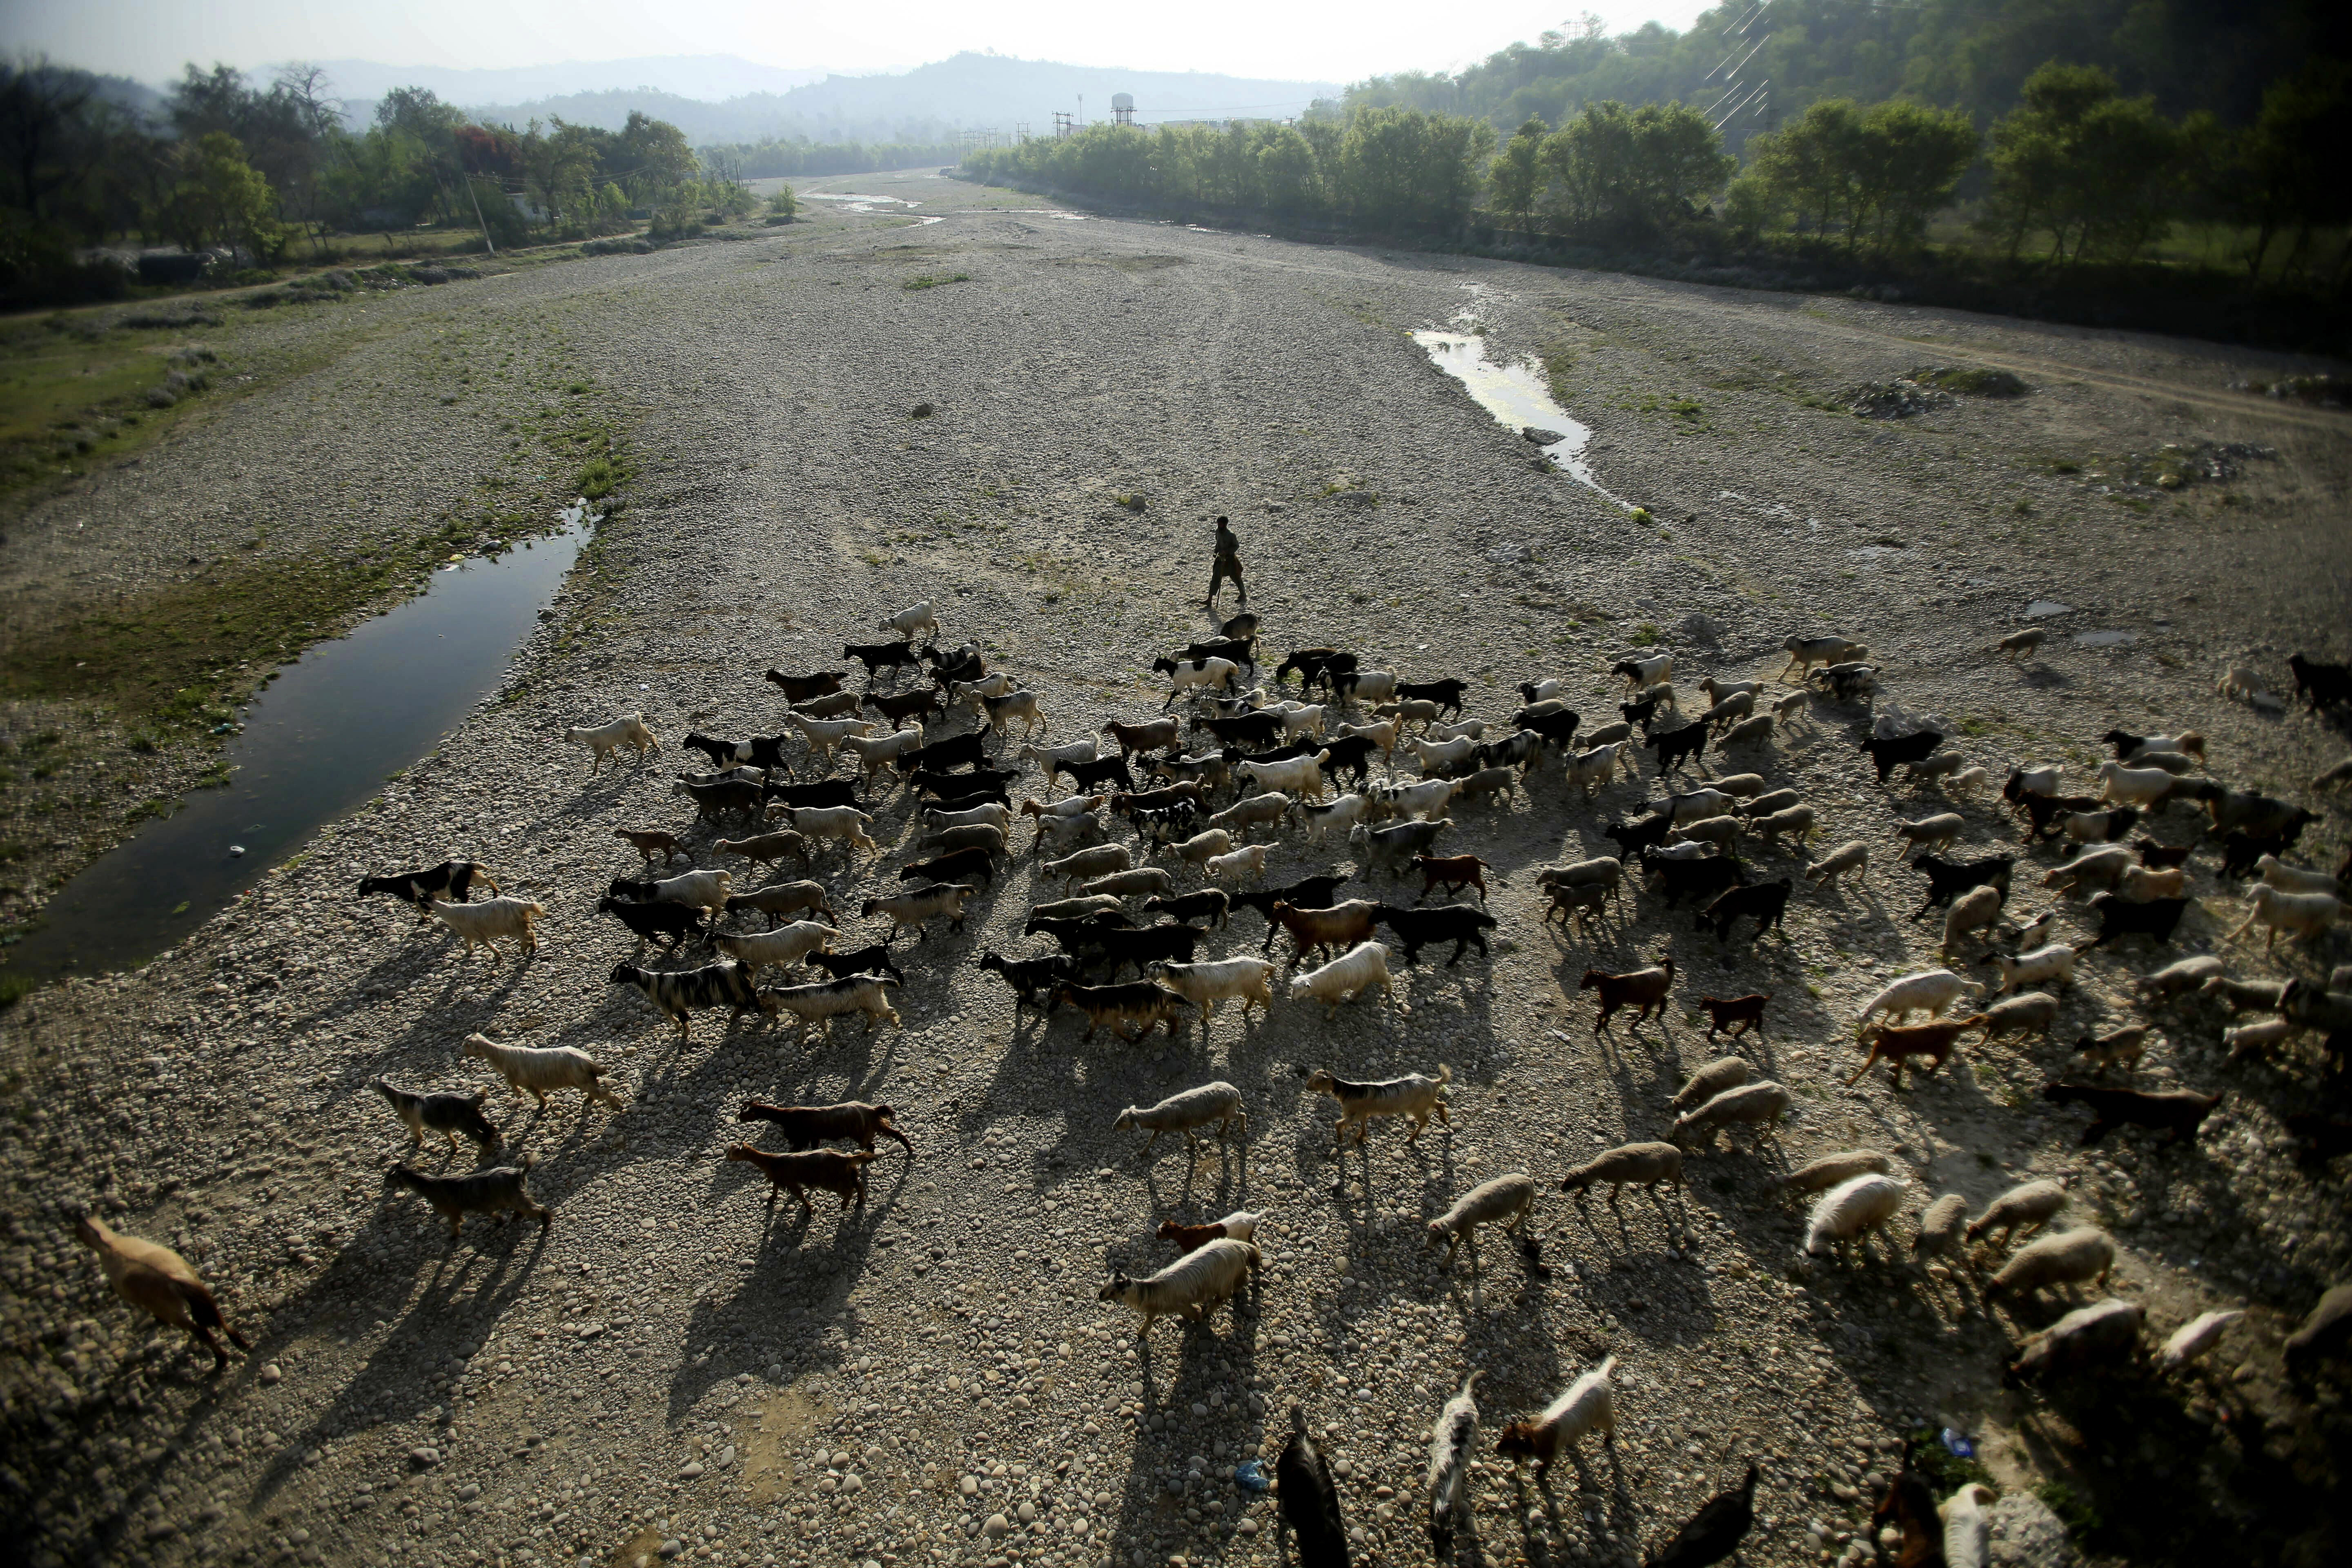 A nomadic Gujjar tribe leads his herd of goats through a dried river bed near the Jammu-Srinagar highway, on the outskirts of Jammu, India - AP